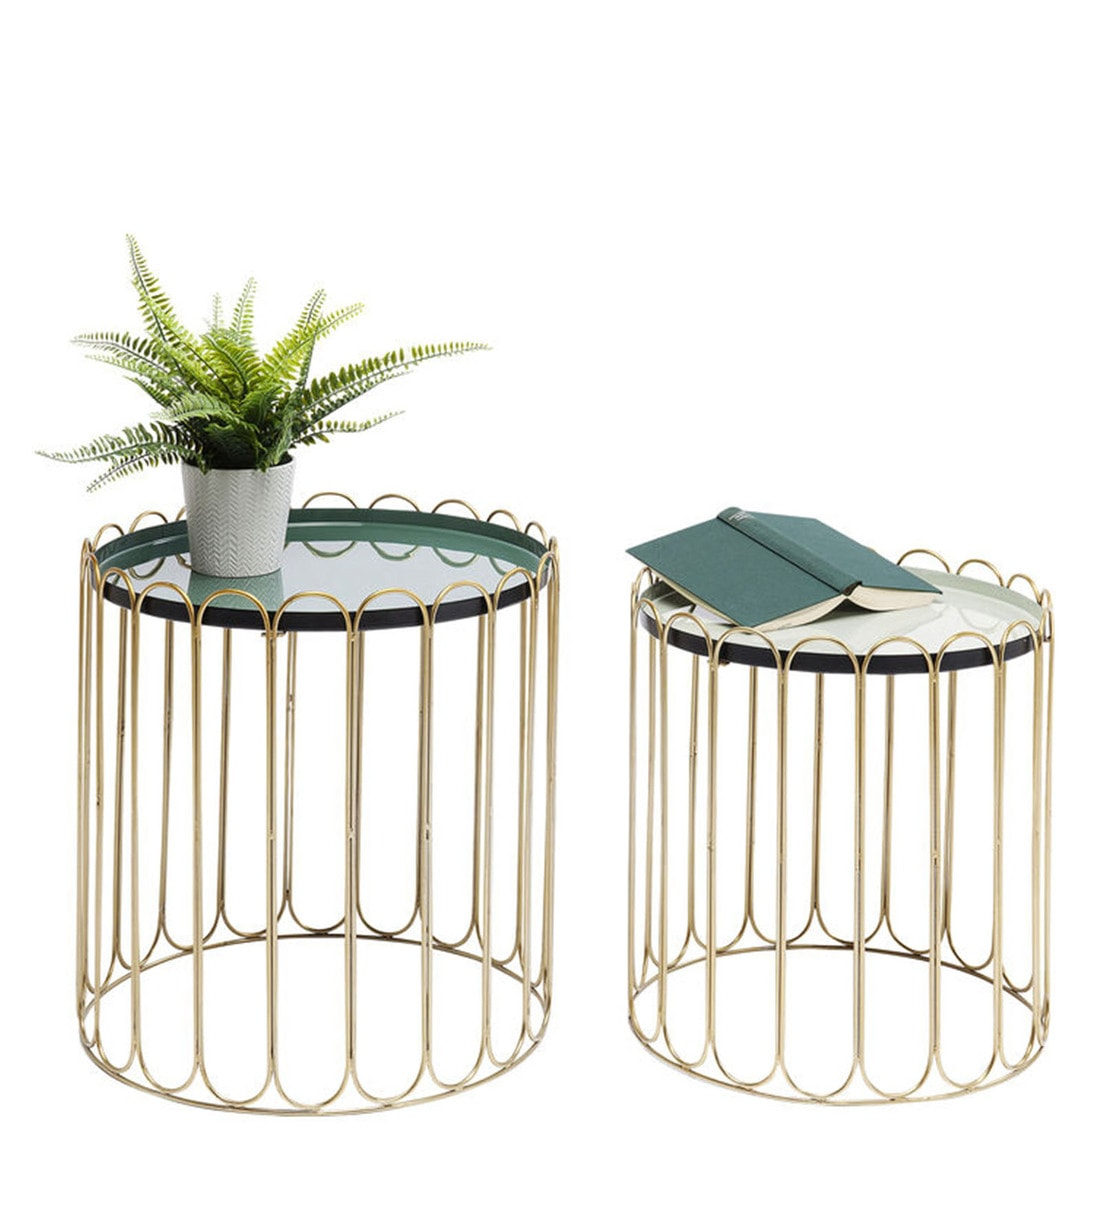 Buy Gironde Round Round Coffee Table Set Of 2 In Golden Finish By Trendy Deco Online Round Coffee Tables Tables Furniture Pepperfry Product